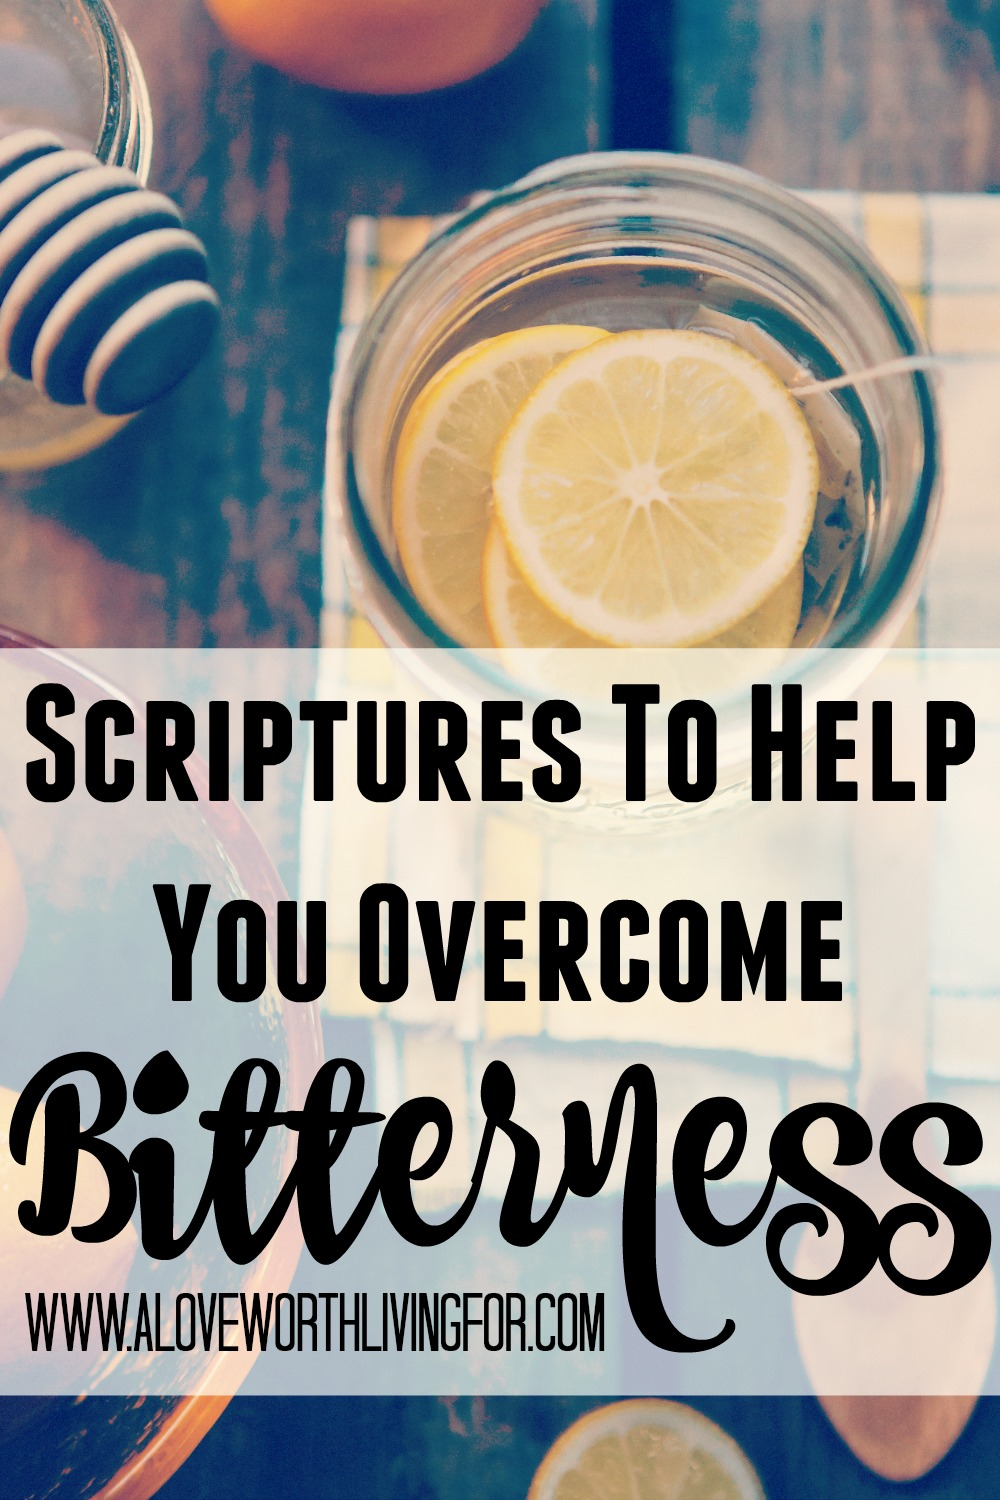 Bitterness is a poison that, if left unchecked, will spread and wreak havoc on your life. Sweeten up you life with these verses on how to overcome bitterness and live life free!